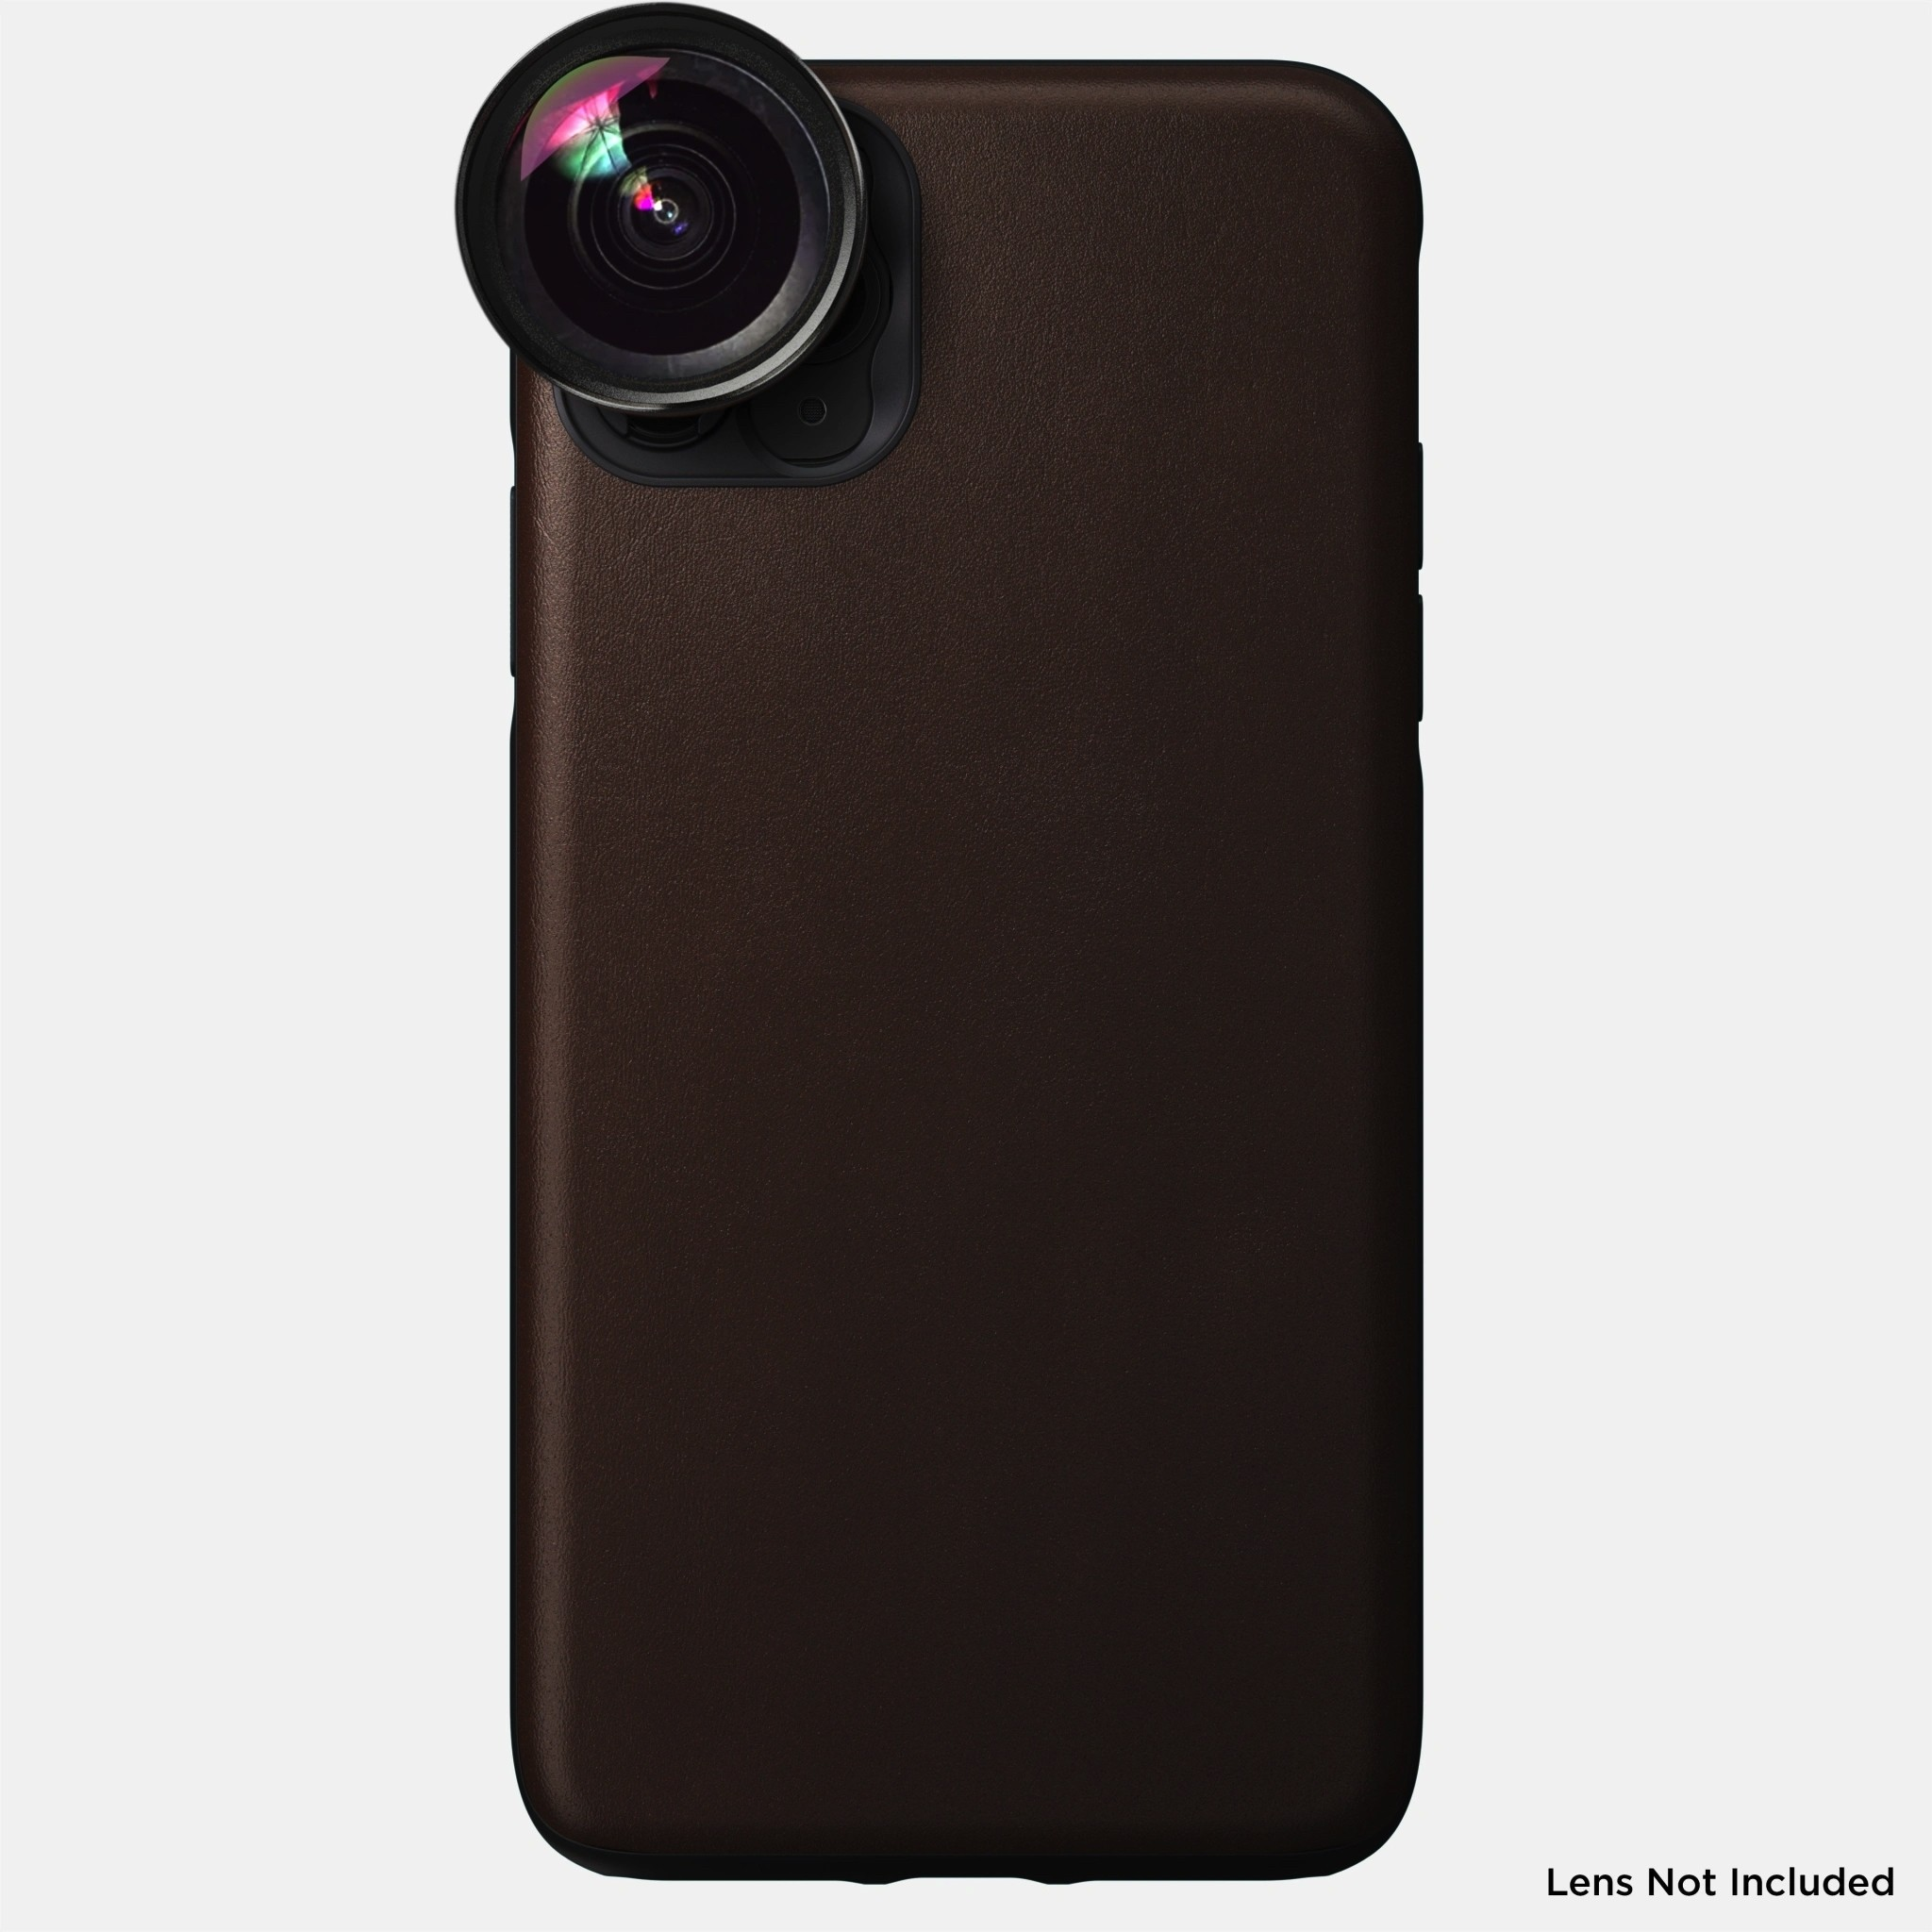 Nomad - Rugged Case with Moment Lens mount - iPhone 11 Pro Max - Brown, NM21YR0R60